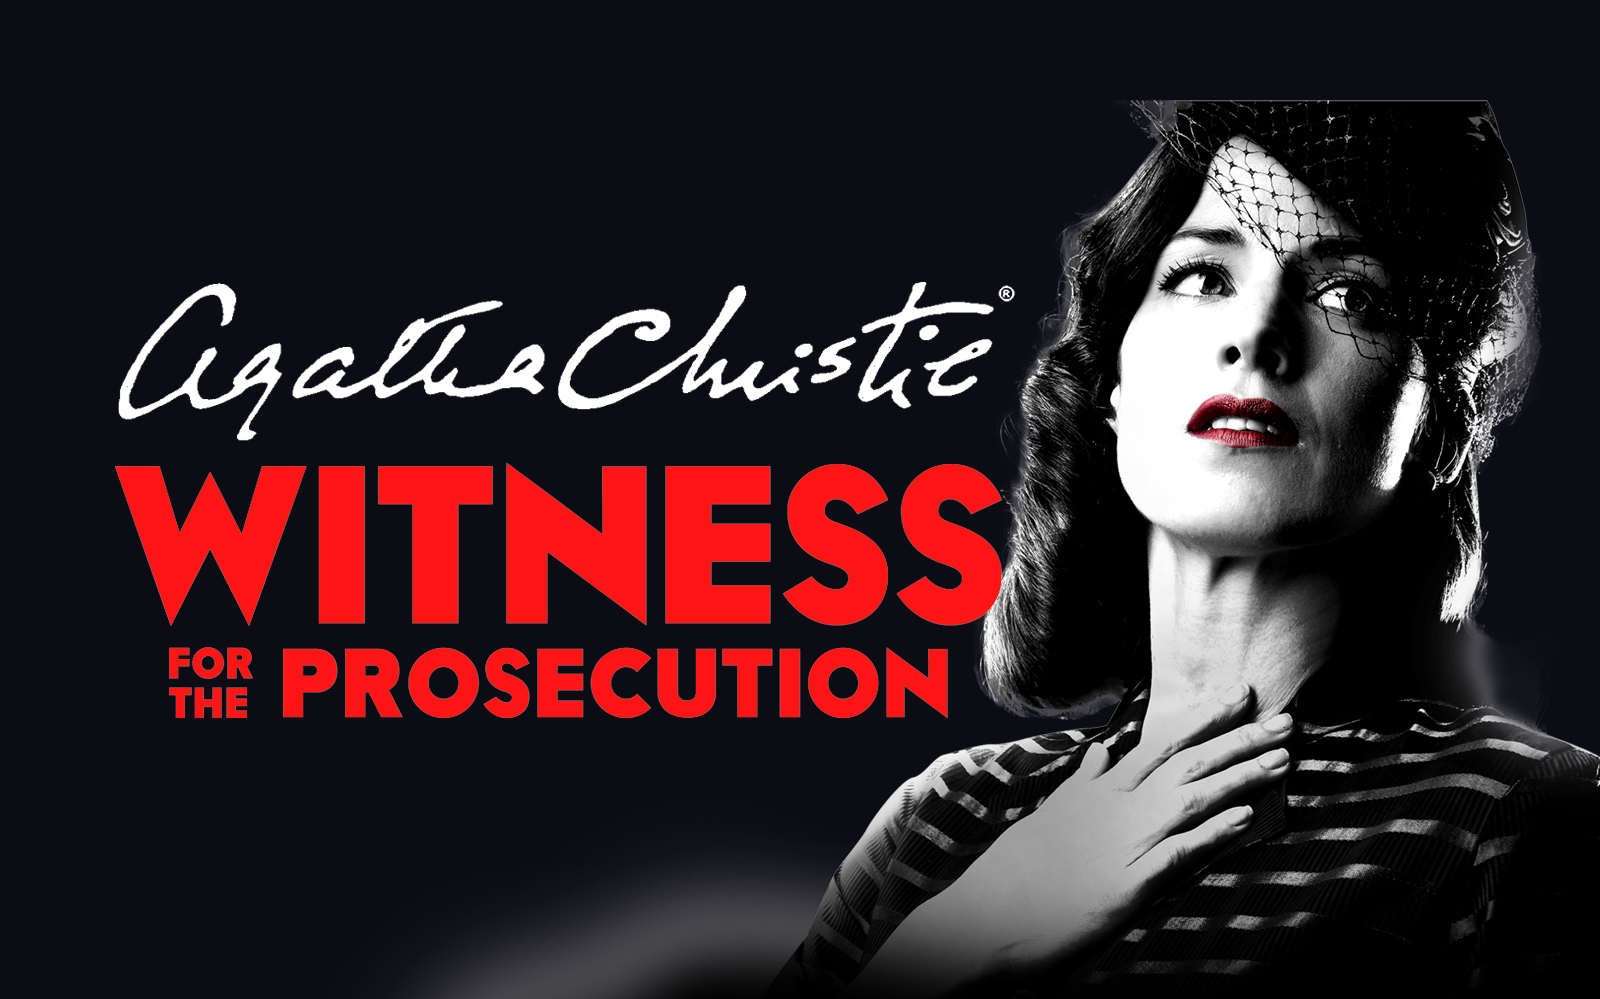 A4c9ce67 bc75 4e32 b2bb 678c8694e2f9 9723 london witness for the prosecution 01